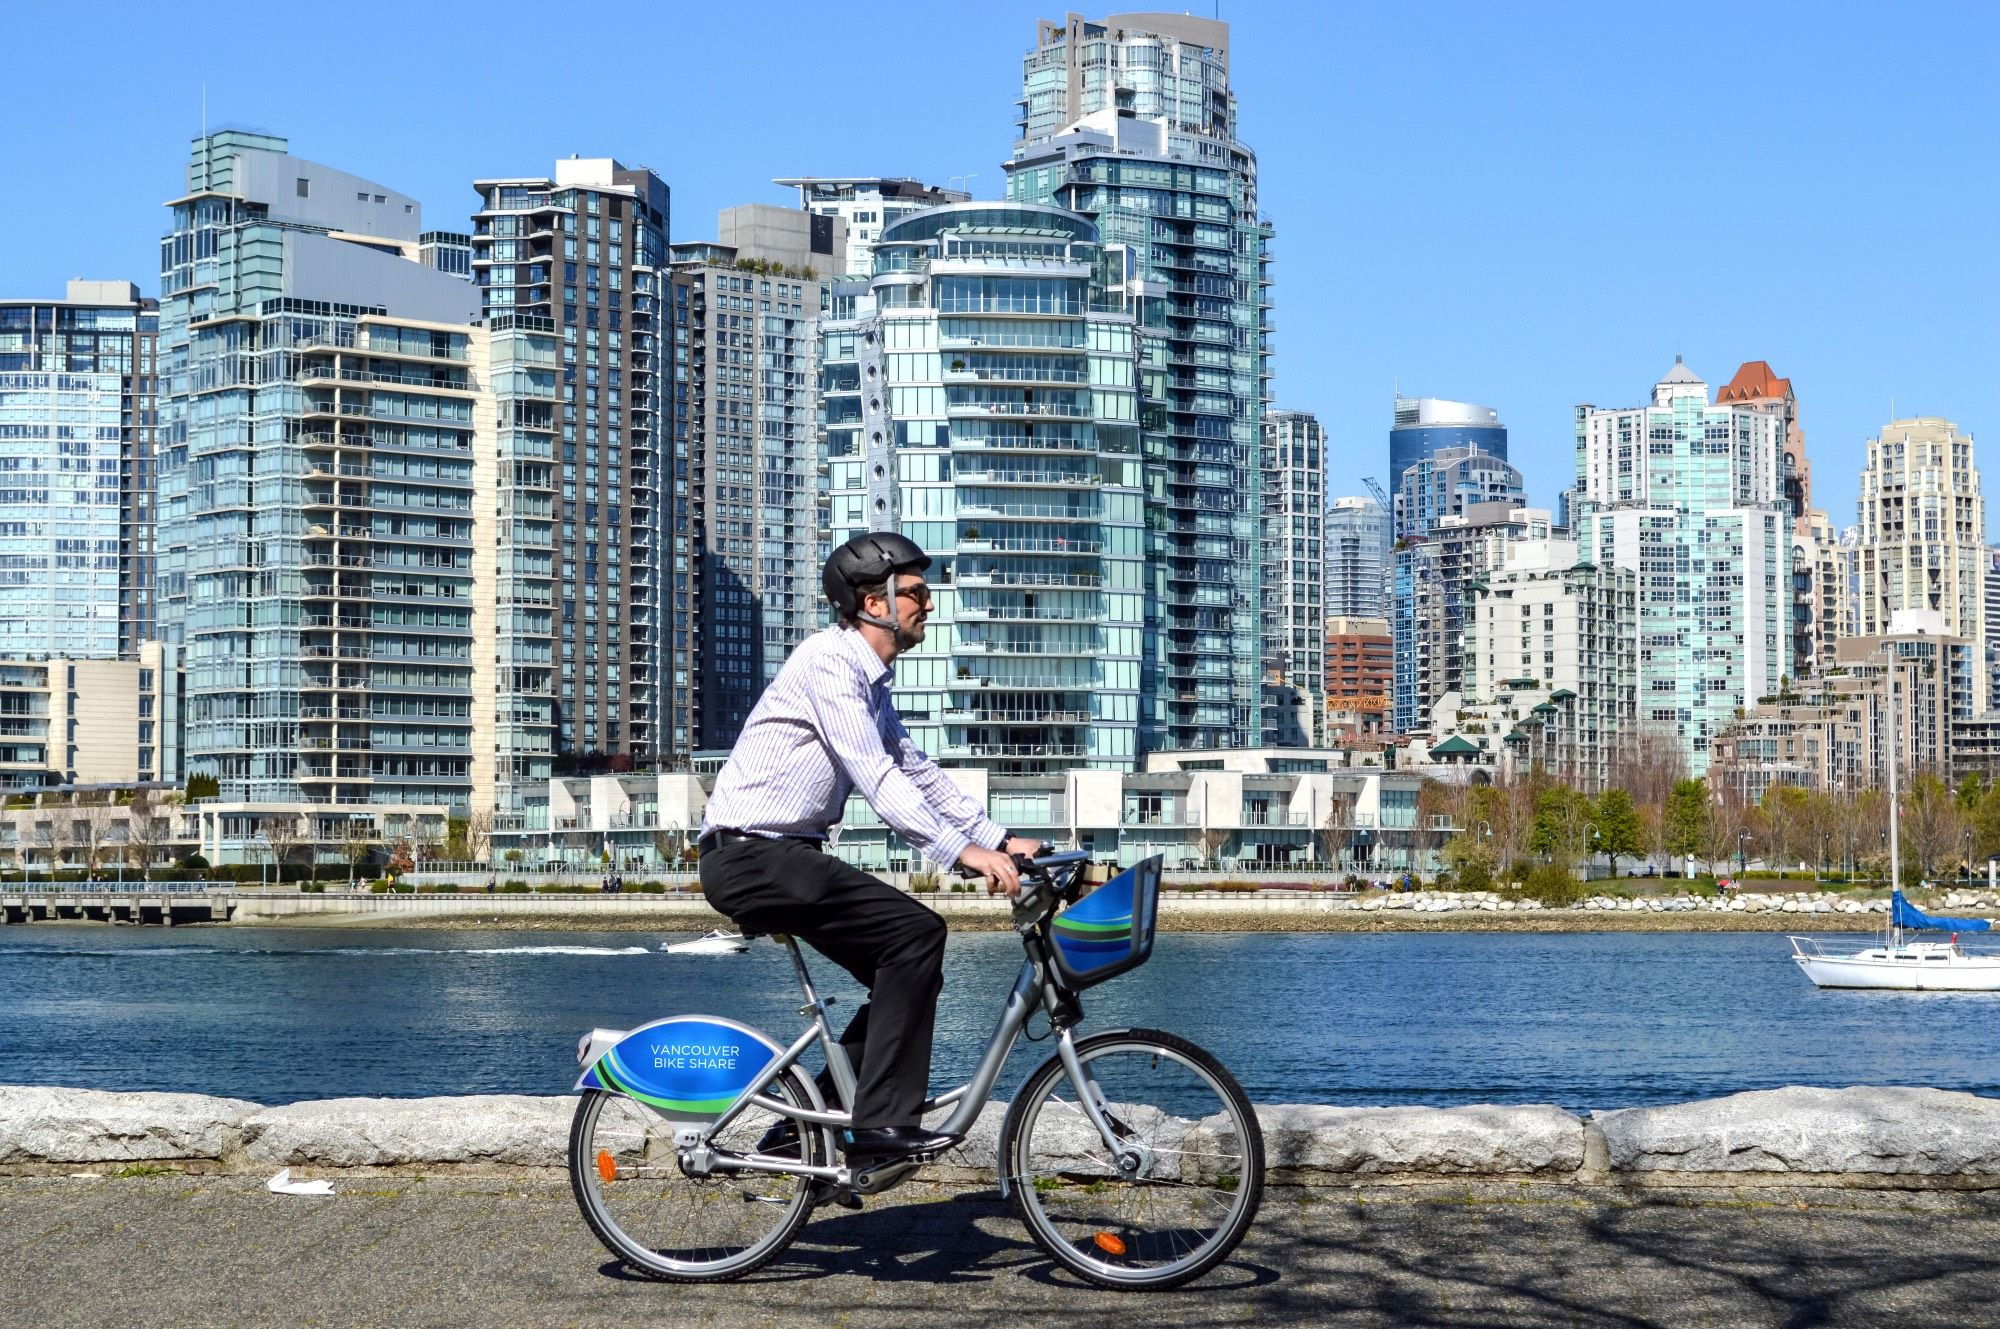 Vancouver's bike share program is tentatively scheduled to launch June 30.